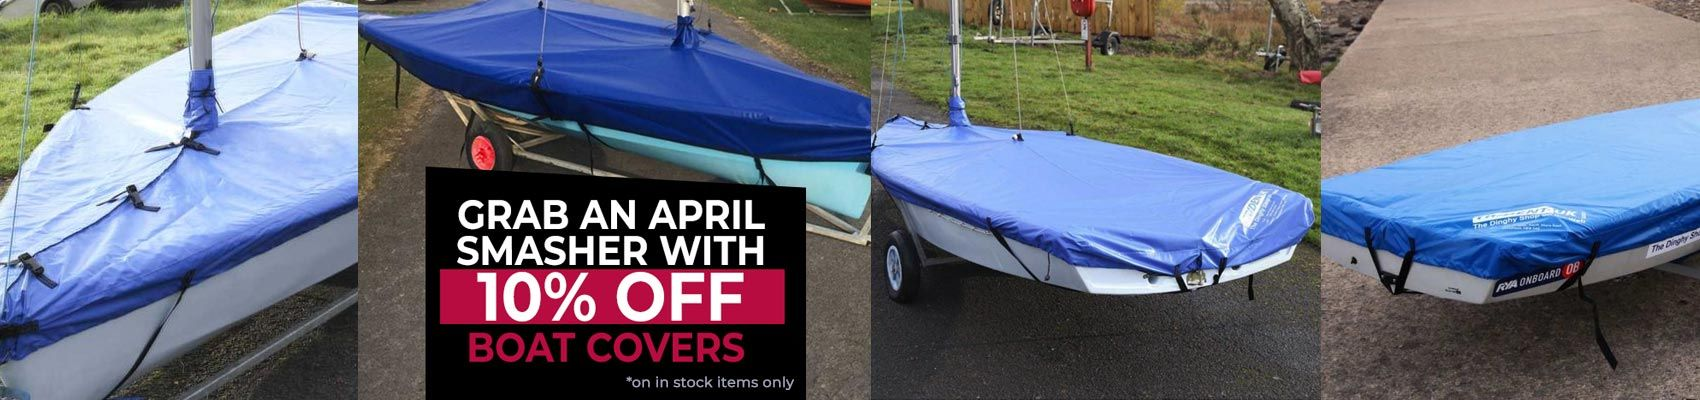 April Boat cover 10 Off Offer